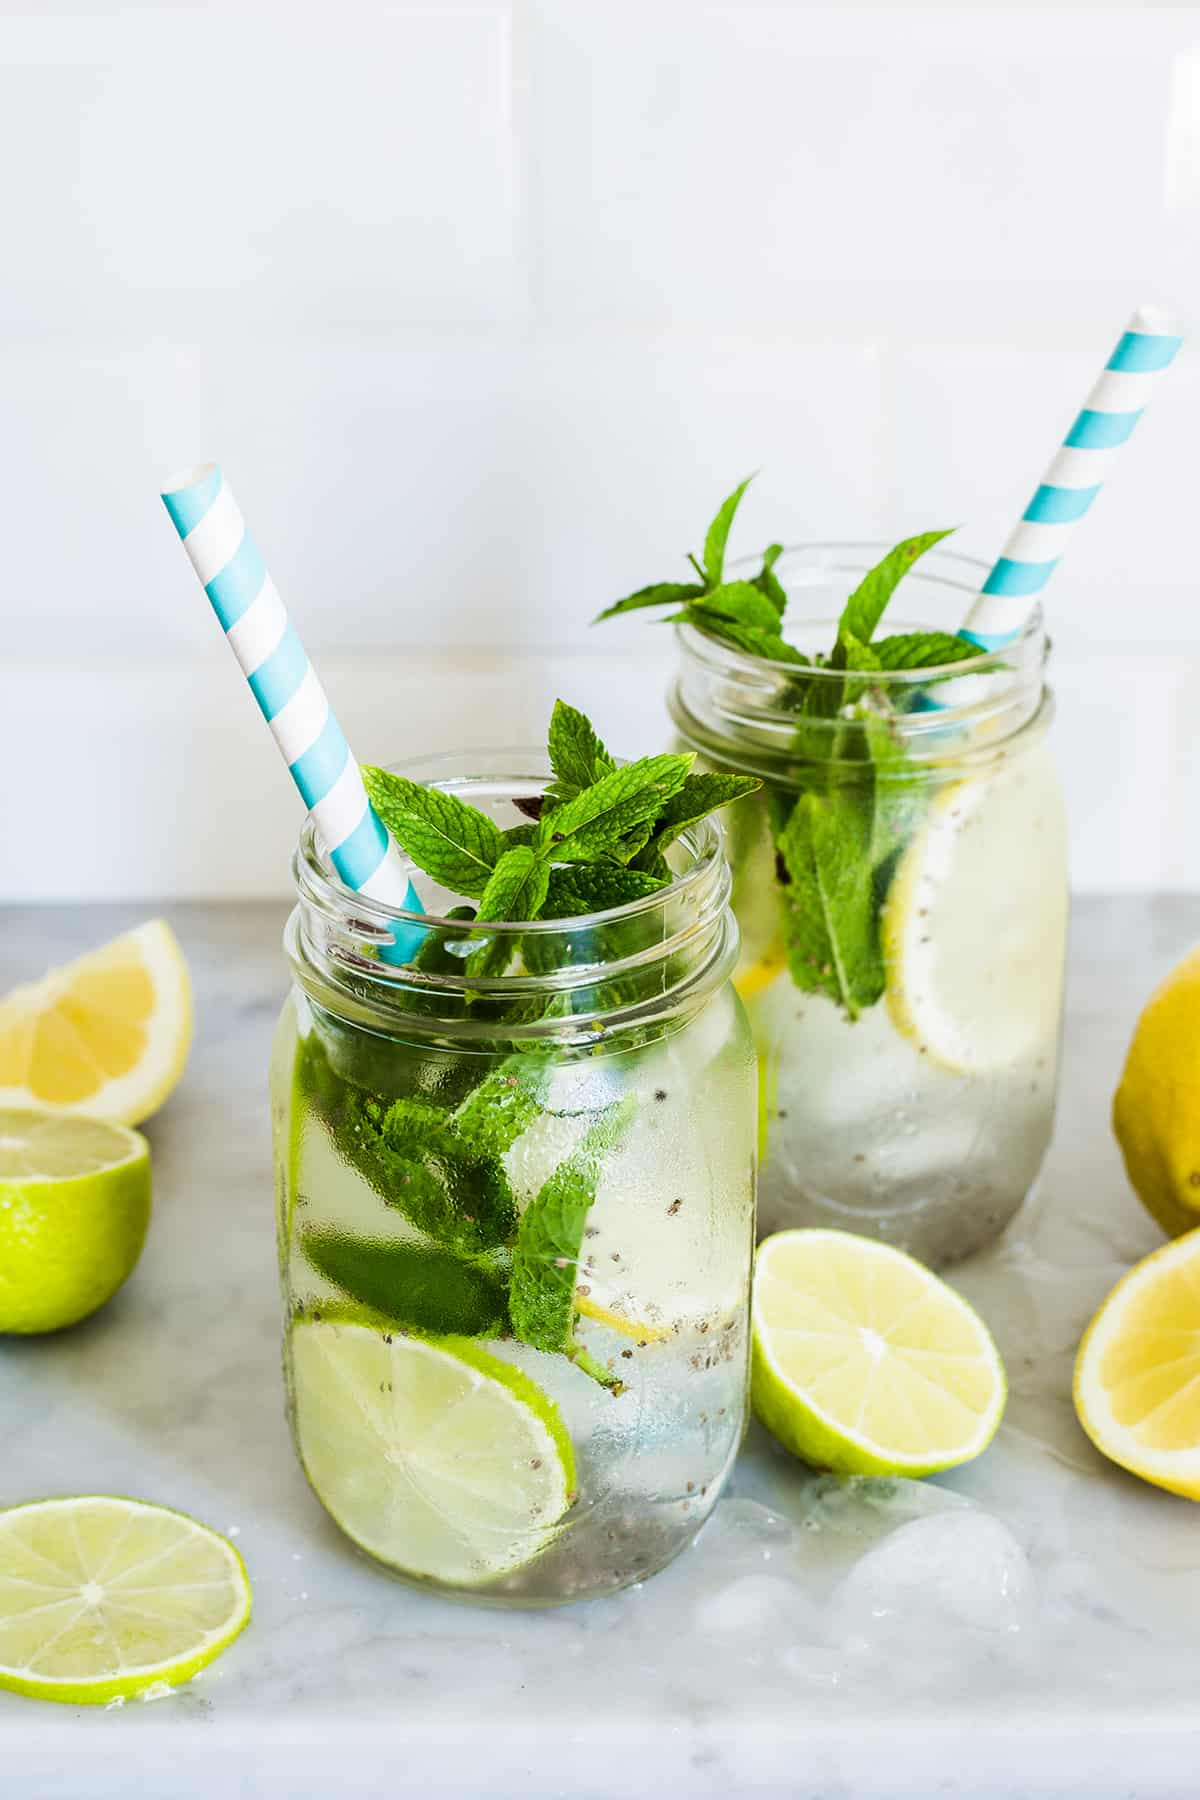 Chia drink with limes, lemons and mint on glasses with ice.